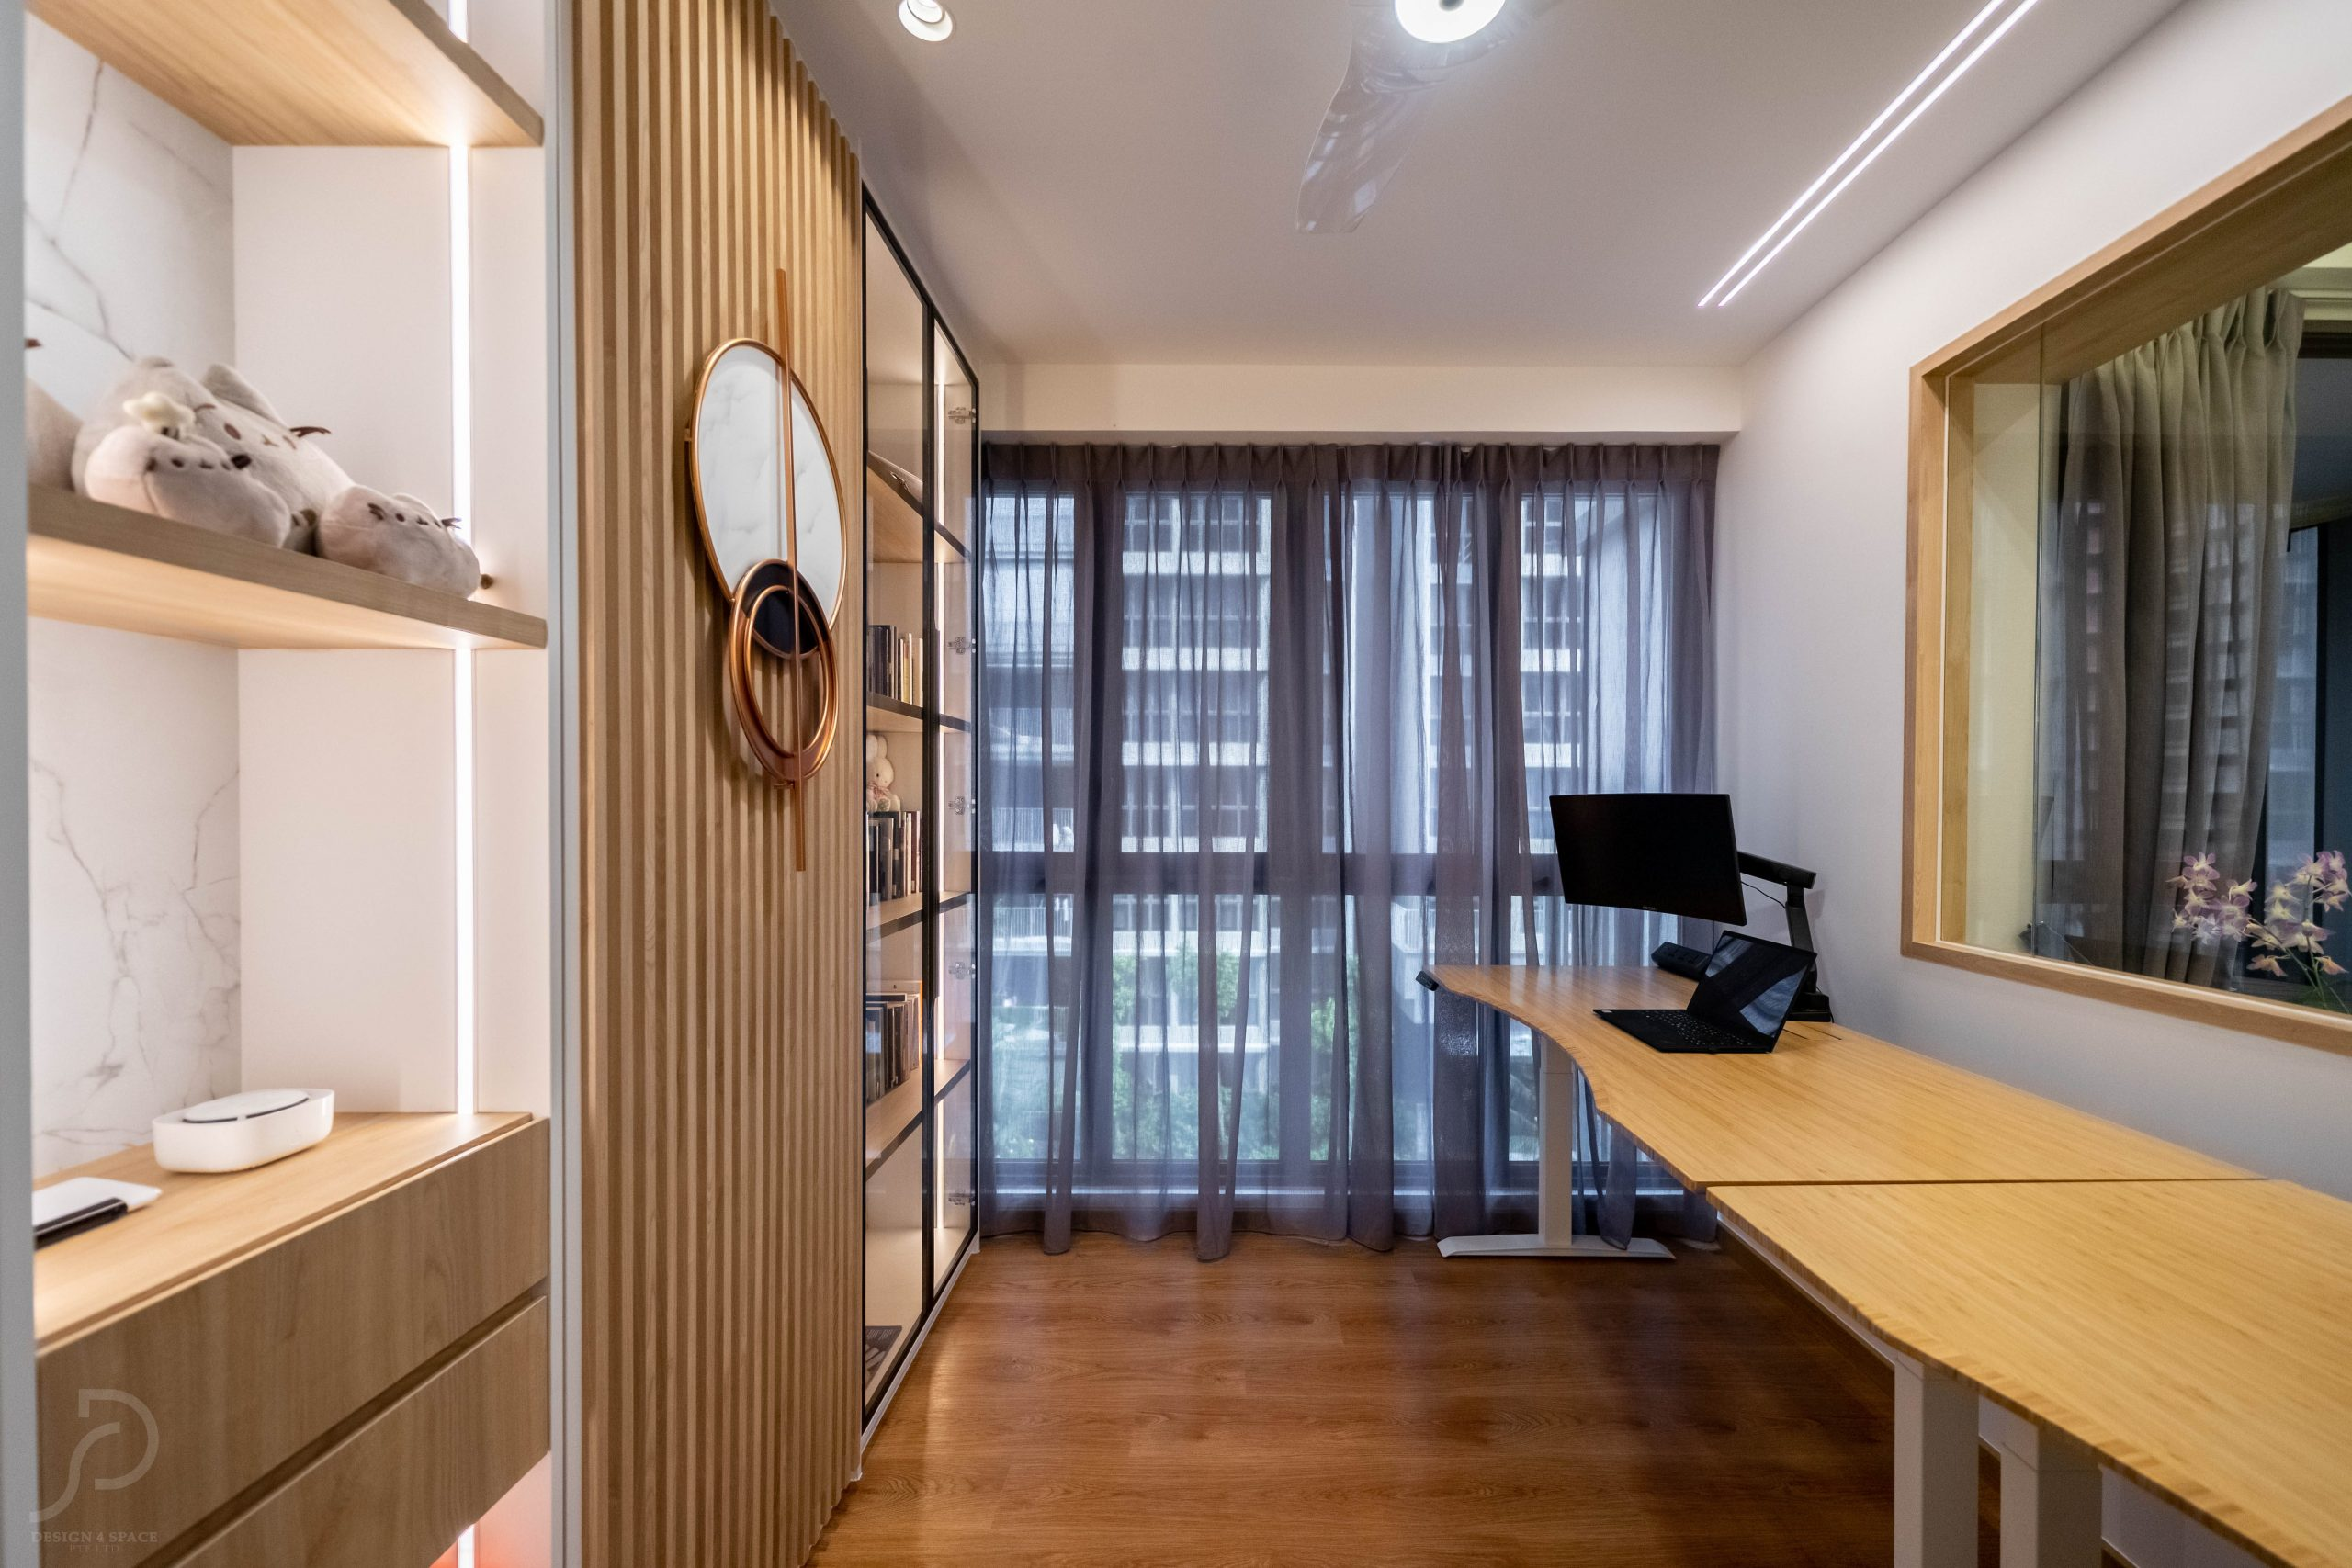 357 - rivercove residence - vincent - mid res watermark5